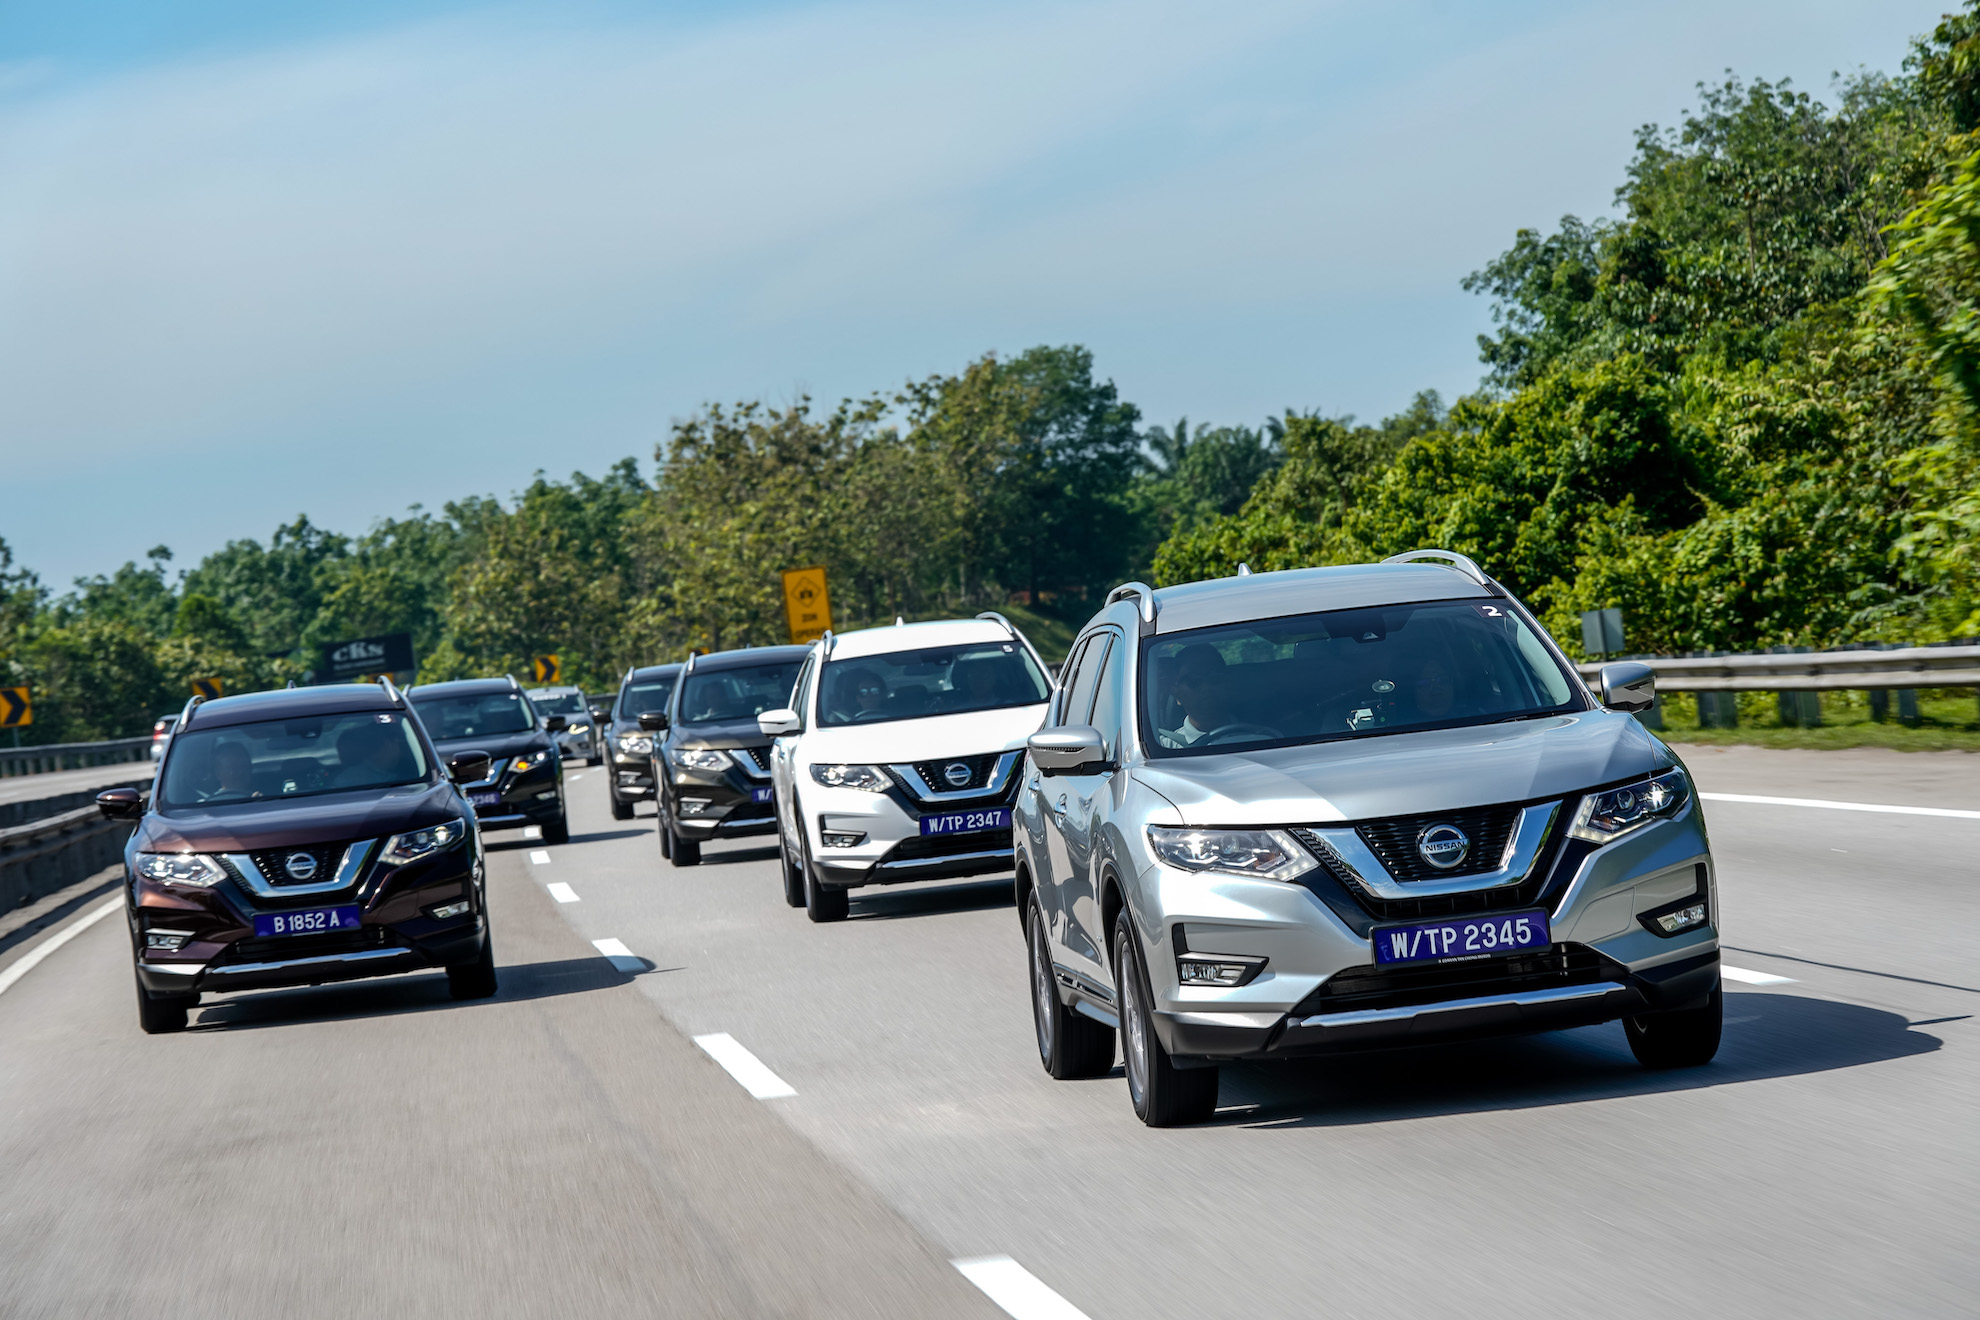 Nissan X-Trail Hybrid Preview: Electrification Gives This X-Trail New Life